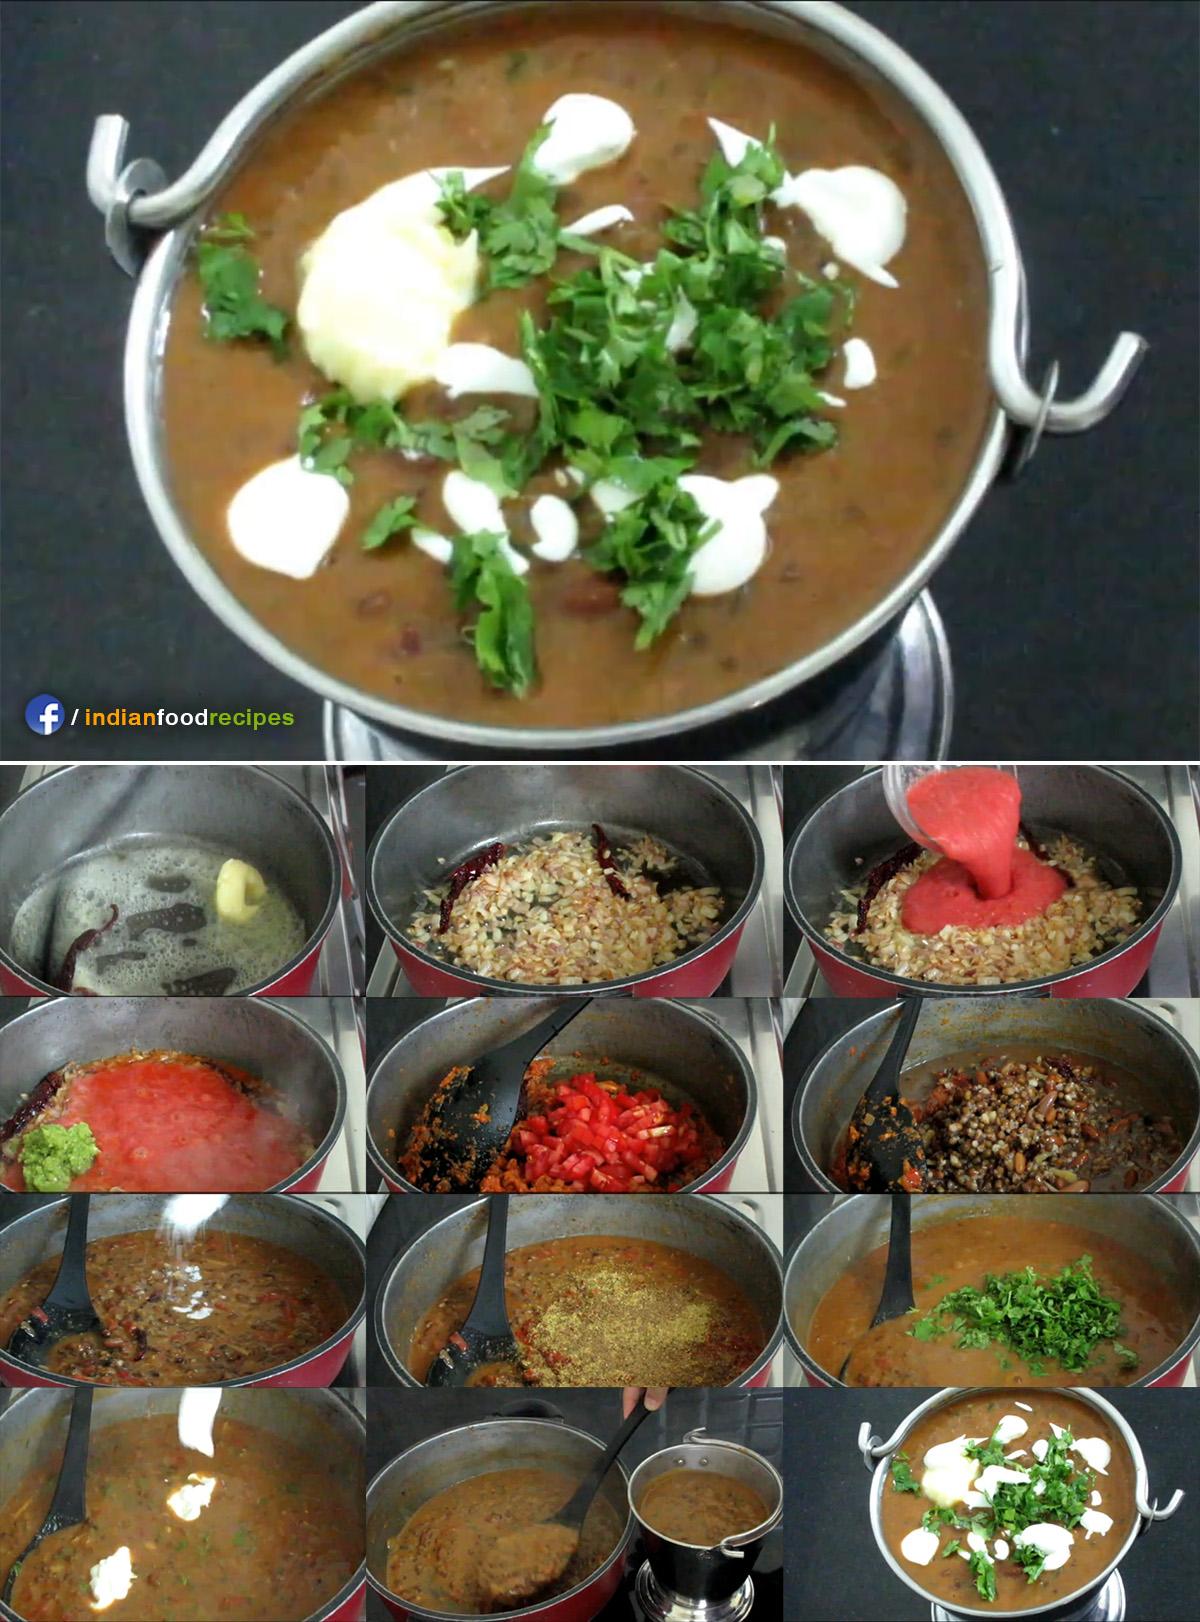 Authentic Pind Dal Makhani recipe step by step